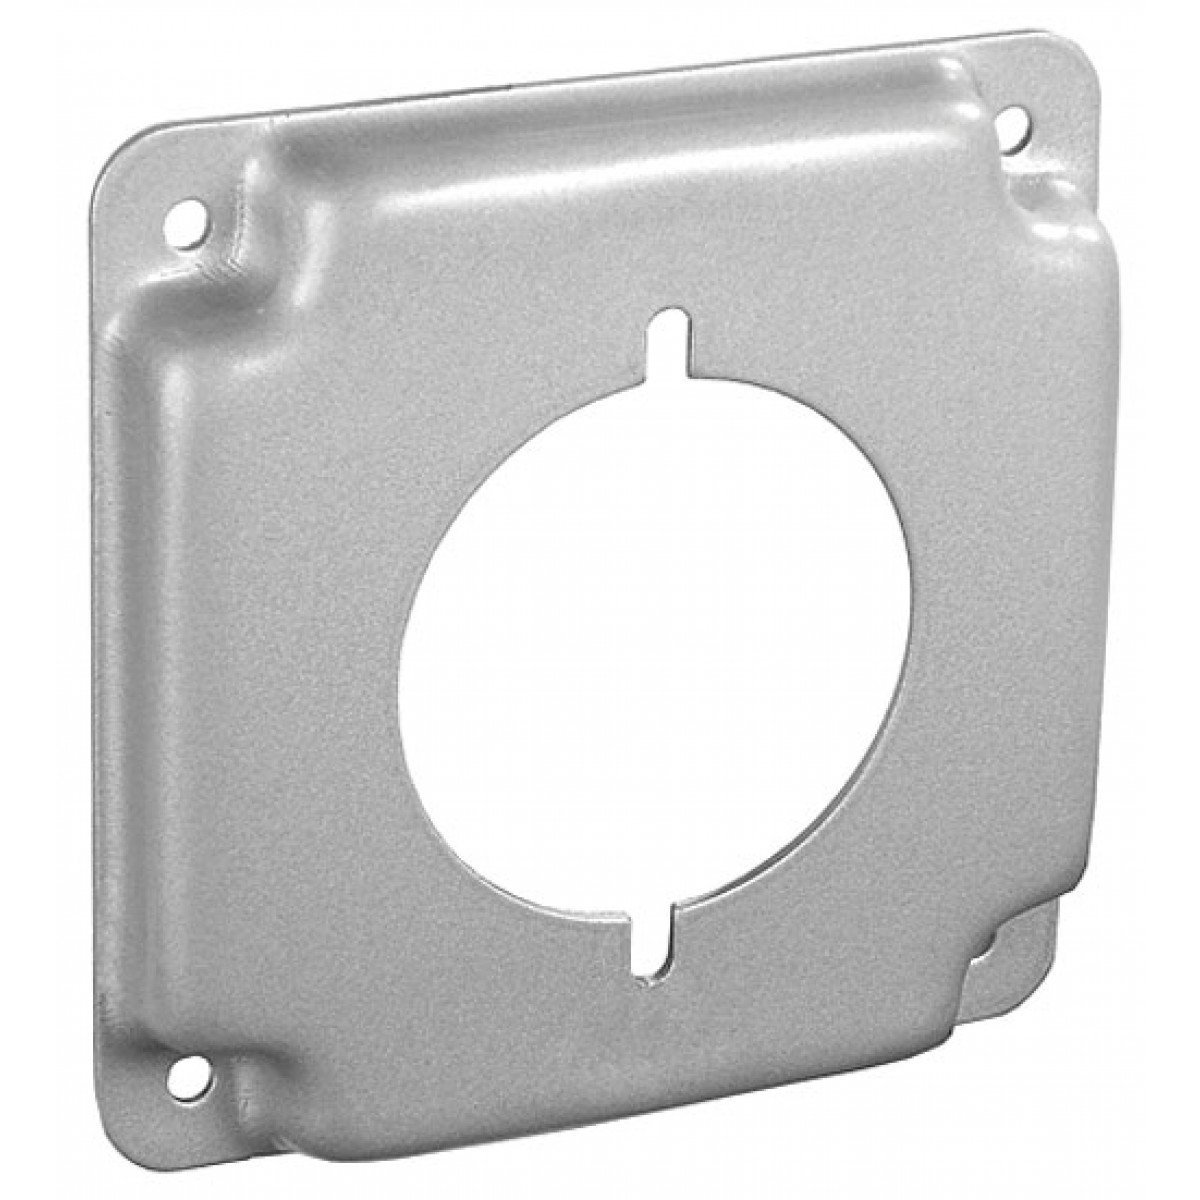 2 Pcs, Steel 4 Square, 1/2 In. Raised 30-50 Amp Receptacle, 2.141 In. Industrial Surface Cover for Quick Installation of Devices & Switches